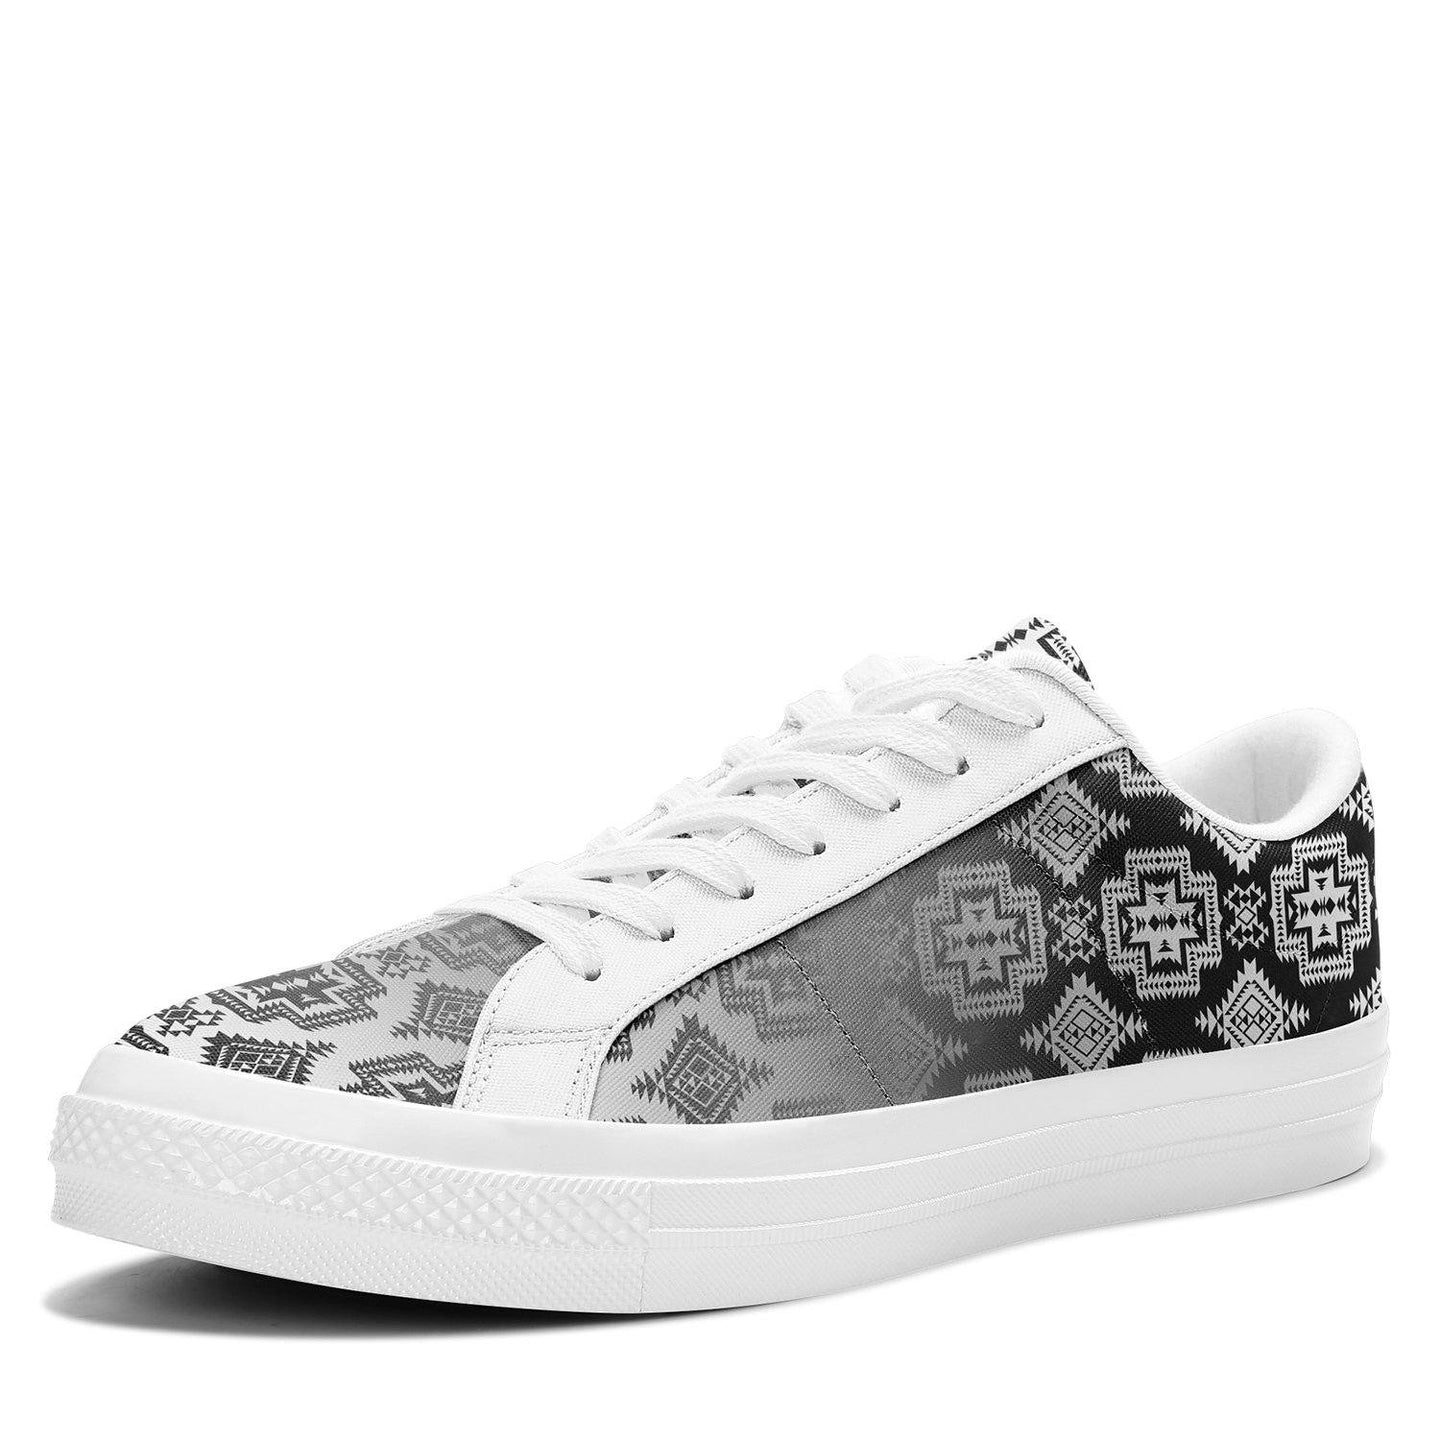 Pretty Blanket White and Black Trade Aapisi Low Top Canvas Shoes White Sole 49 Dzine